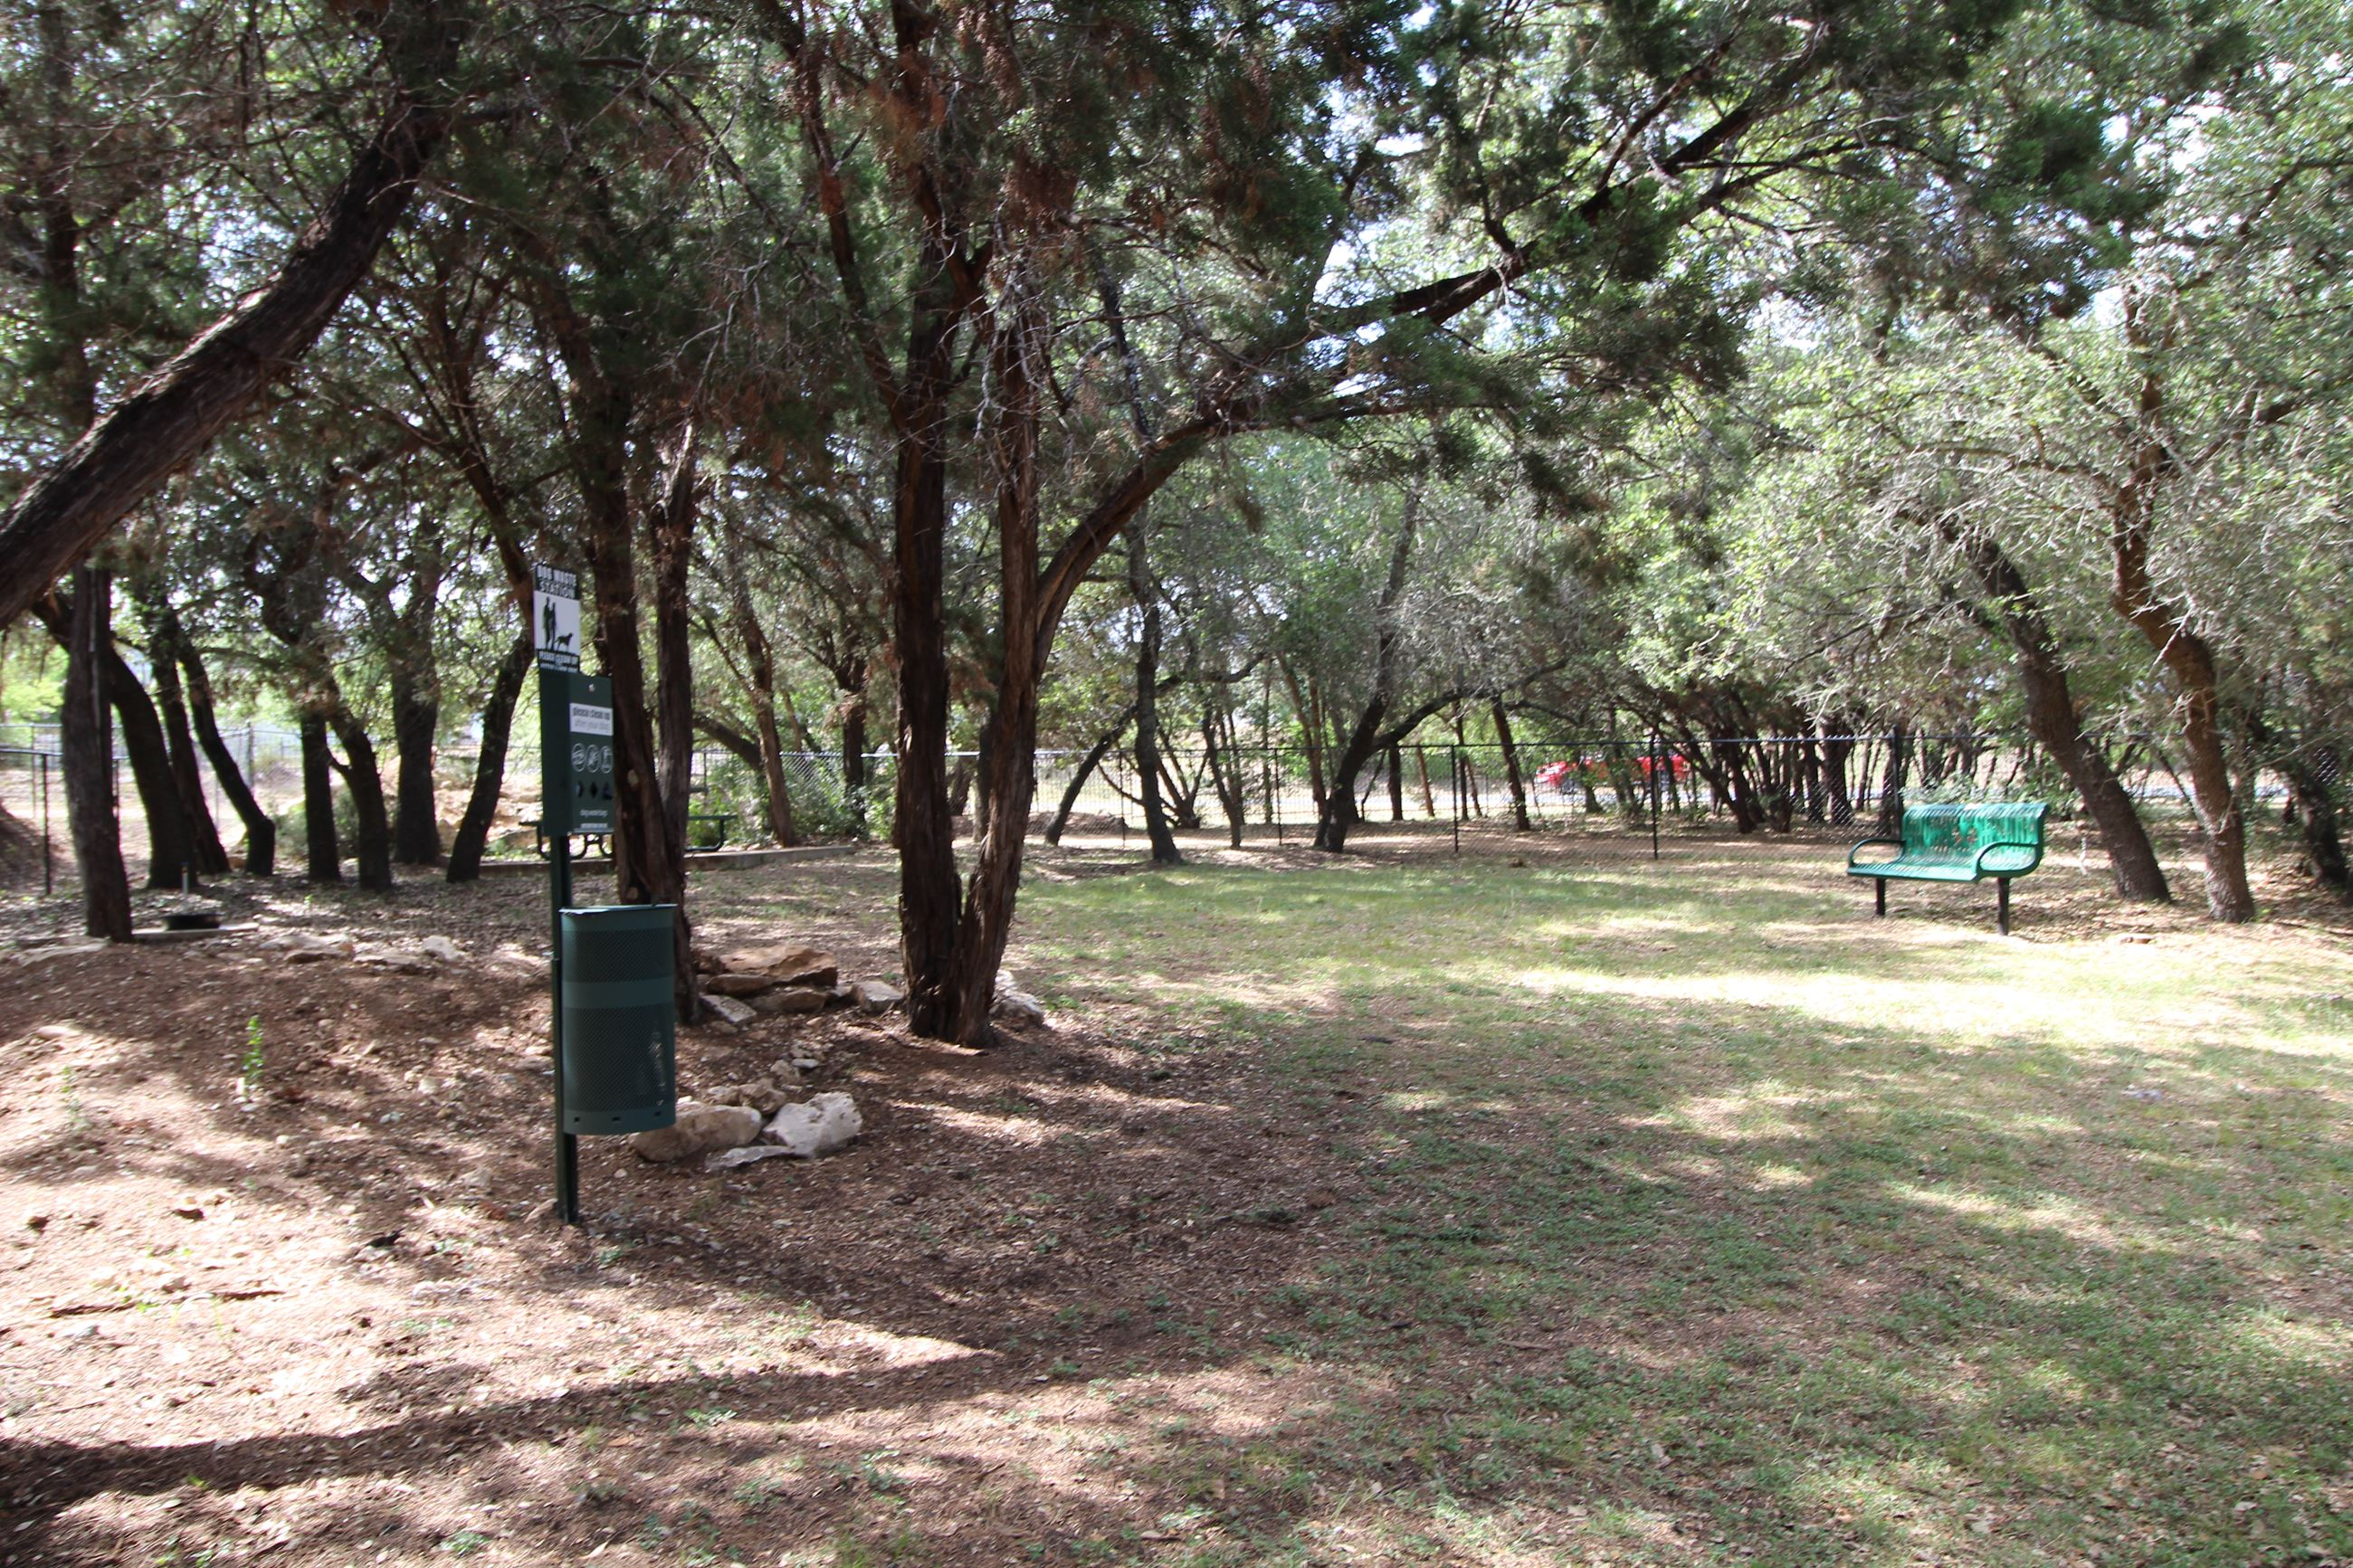 The small dog park, with plenty of room to explore and a bench for human companions.